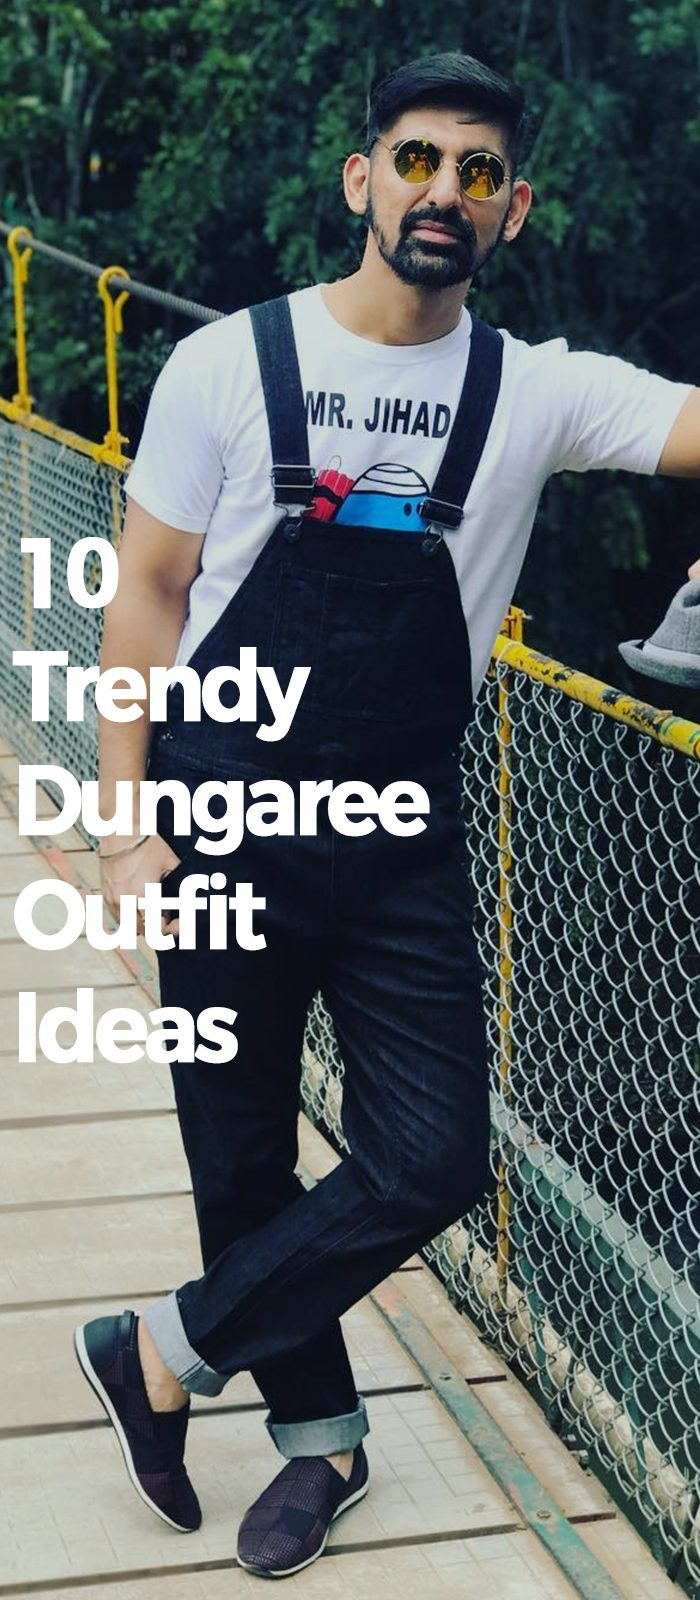 10 Trendy Dungaree Outfit Ideas